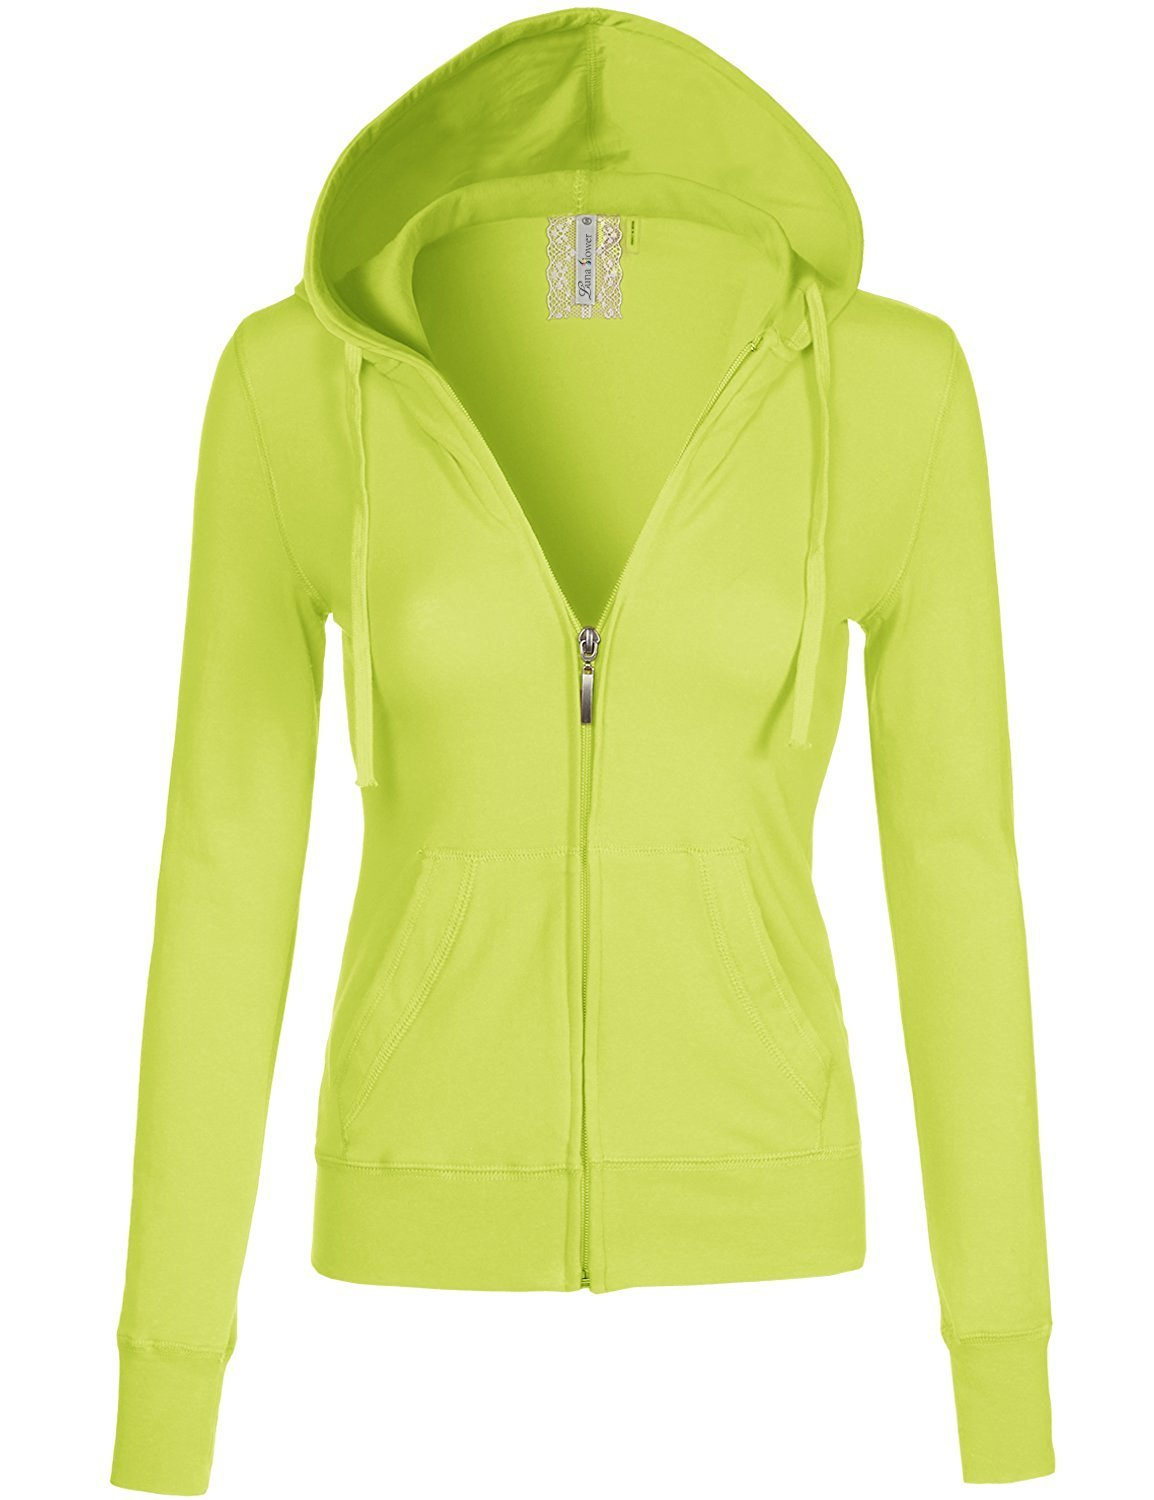 Luna Flower Women's Long Sleeve Slim Fit Kangaroo Pocket Zipper Hoodie Jackets Lime S (LFWHD0029)